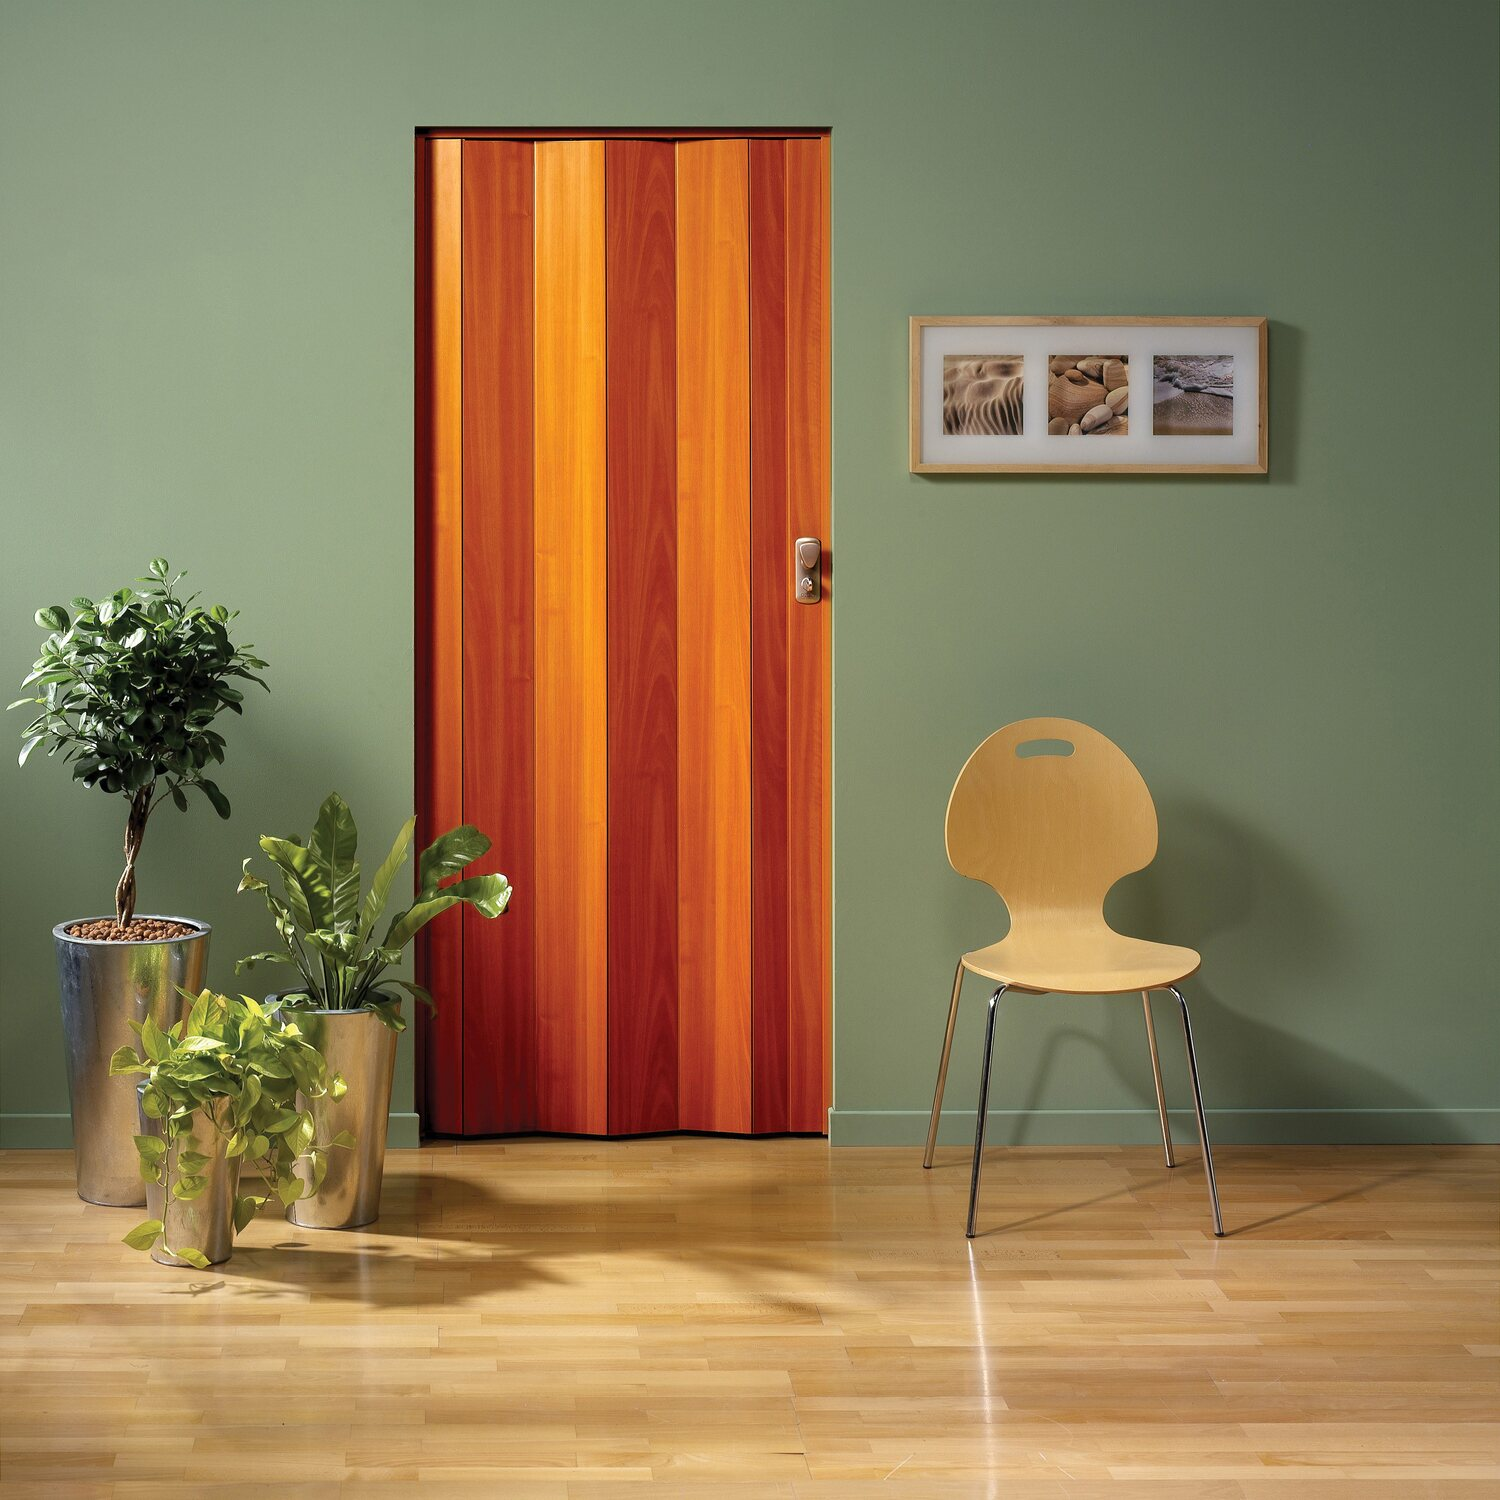 Spacy porta a soffietto ciliegio acquista da obi for Finestre pvc obi